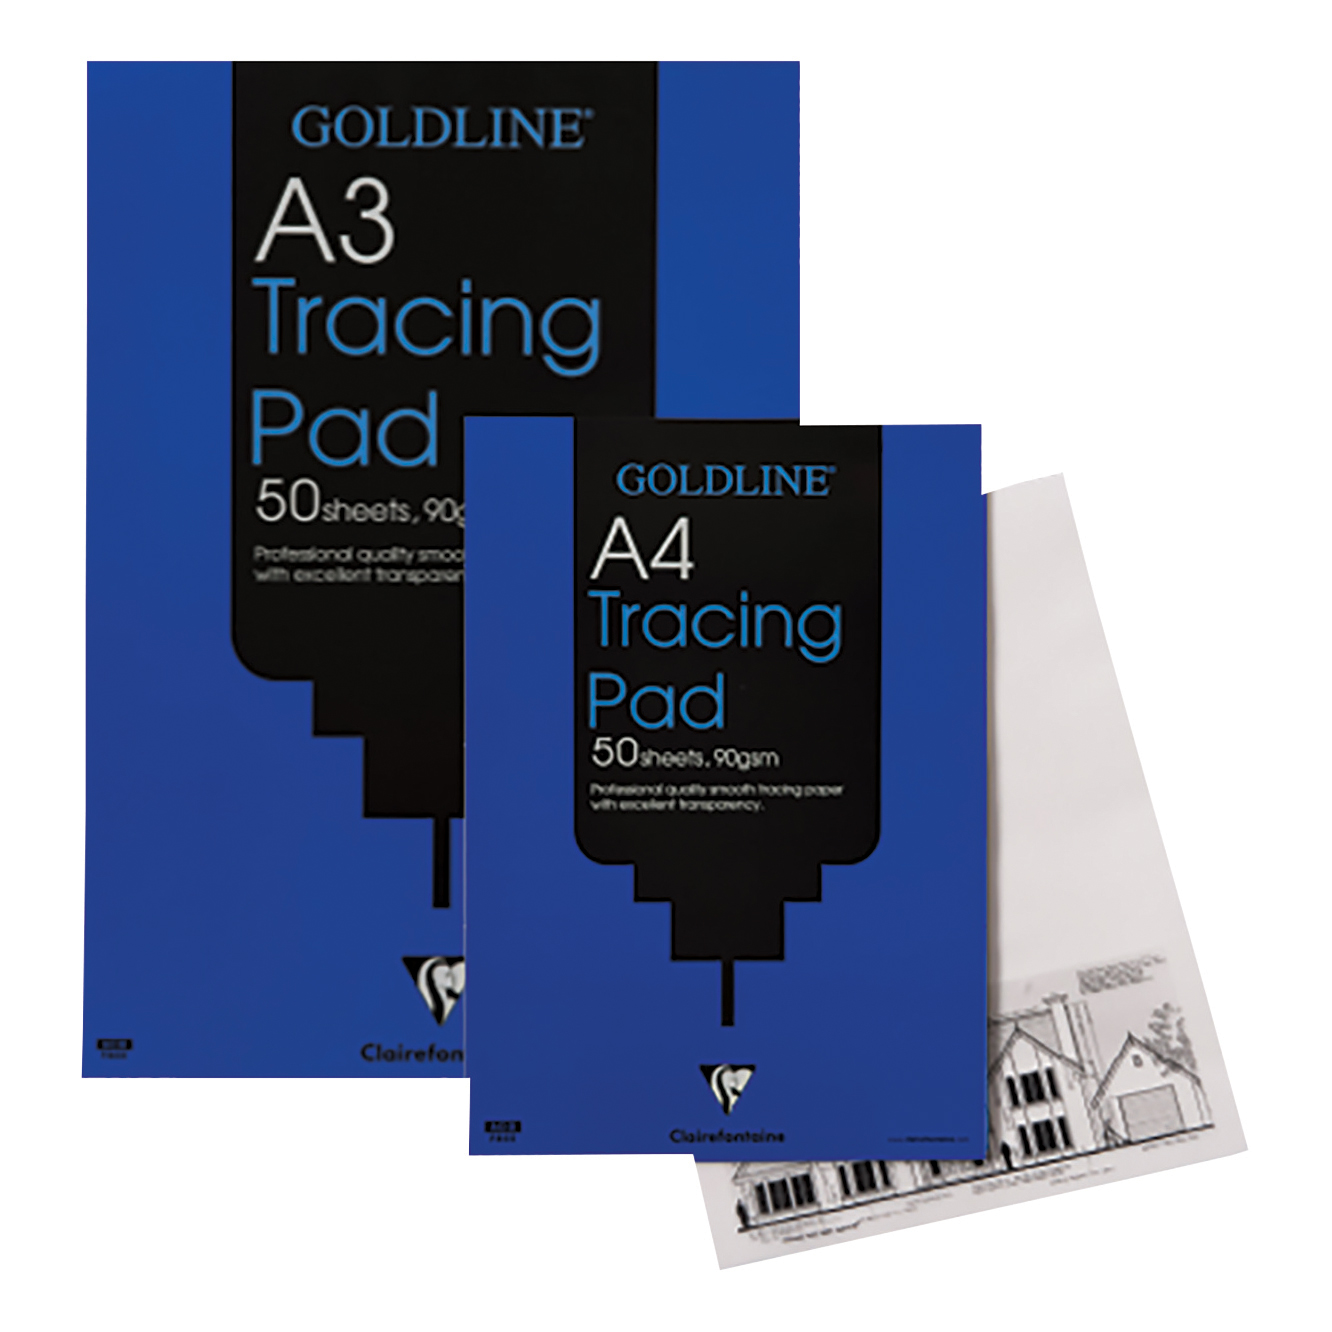 Goldline Professional Tracing Pad 90gsm Acid-free Paper 50 Sheets A4 Ref GPT1A4Z Pack 5